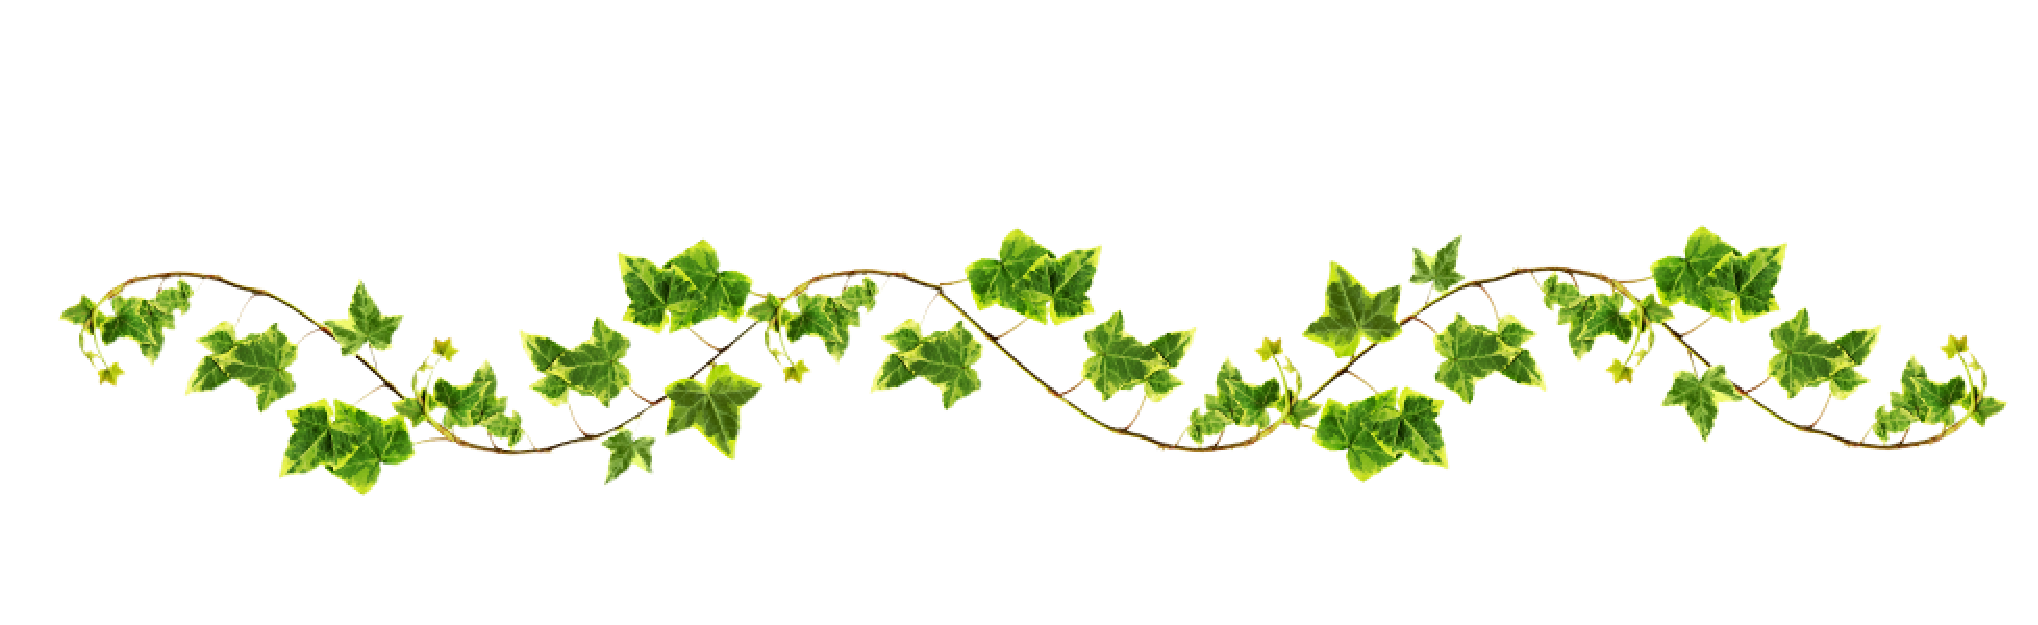 Vine with maple like. Vines clipart archway